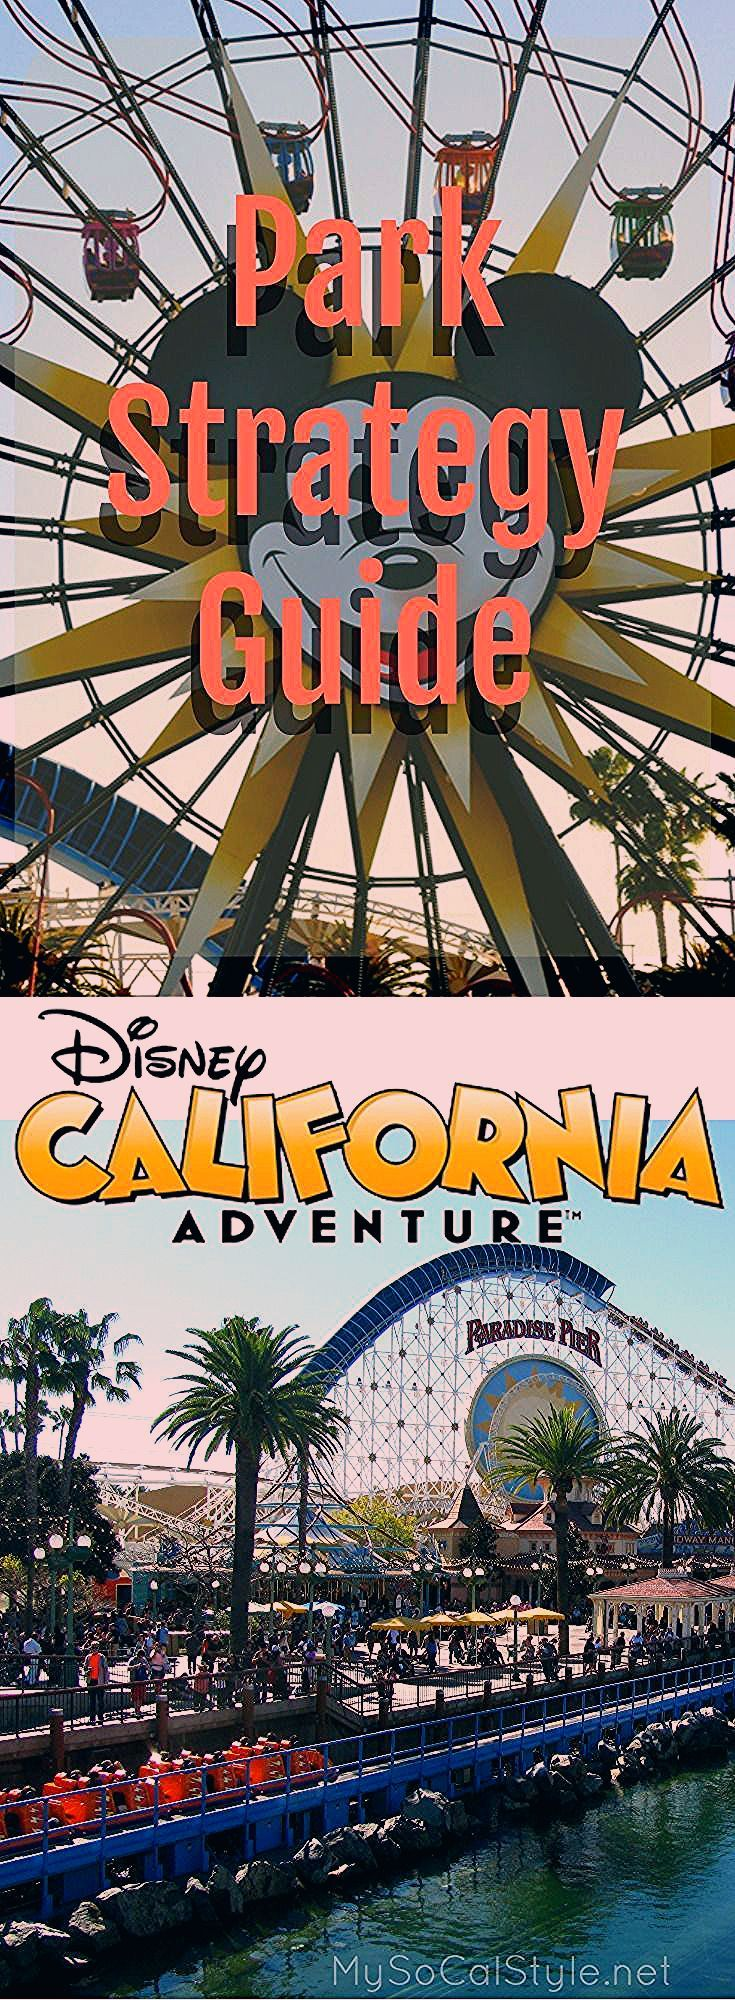 Photo of Best Strategies for Disney's California Adventure | The Pixie Dusted Planner